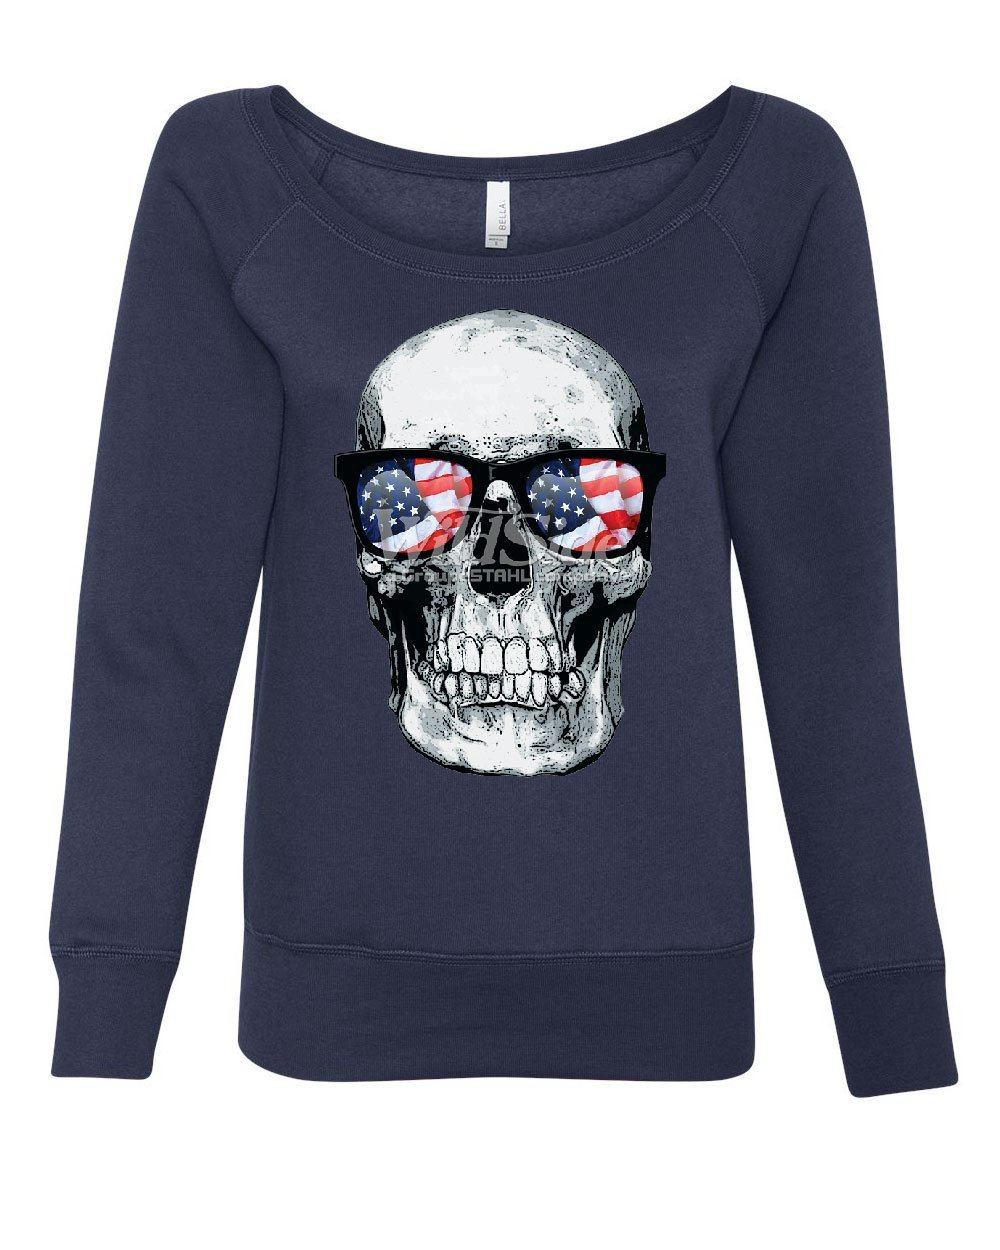 Tee Hunt Skull with Glasses Women's Sweatshirt 4th of July Stars and Stripes Patriot Navy Blue 2XL